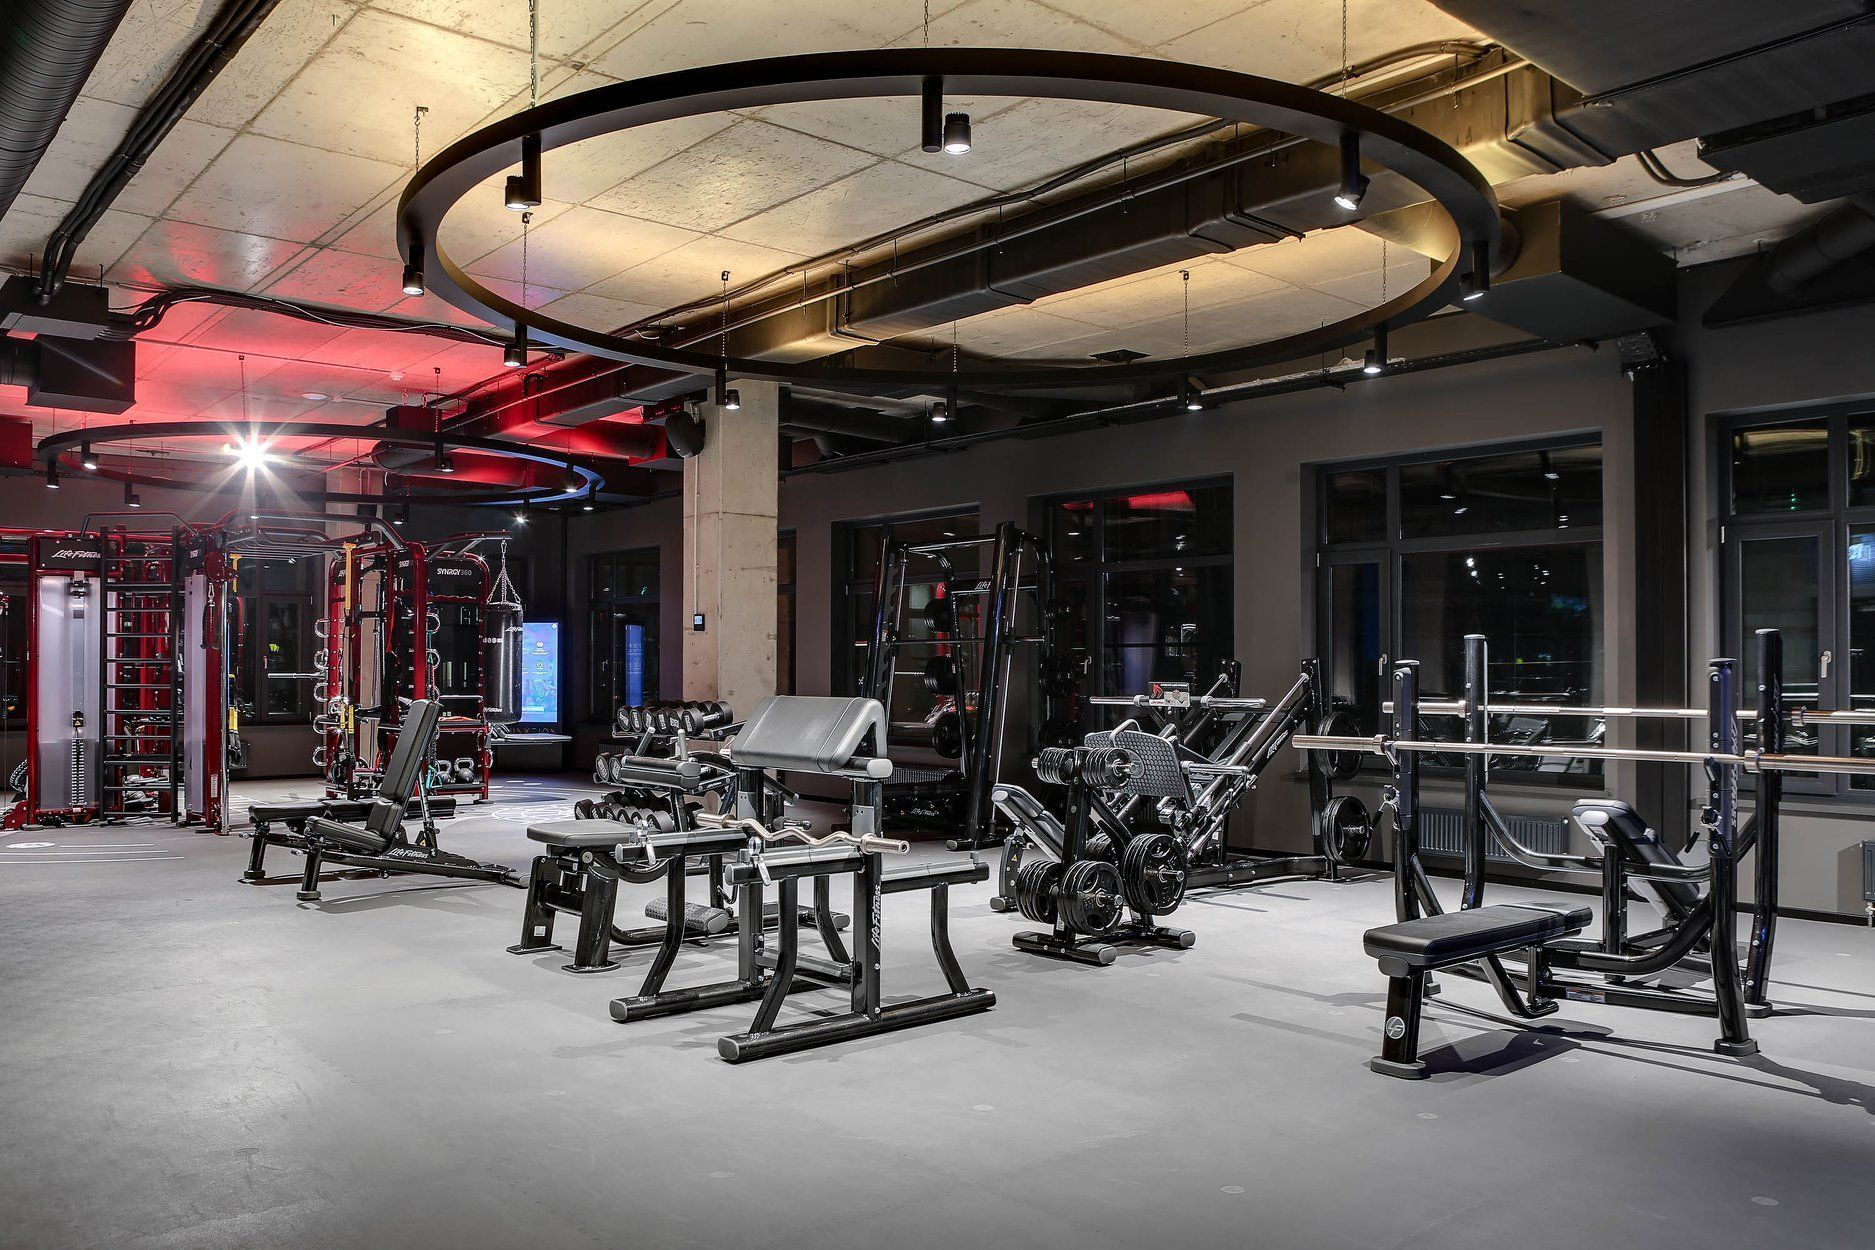 Porosity of flooring: why impermeability is important in rubber gym flooring